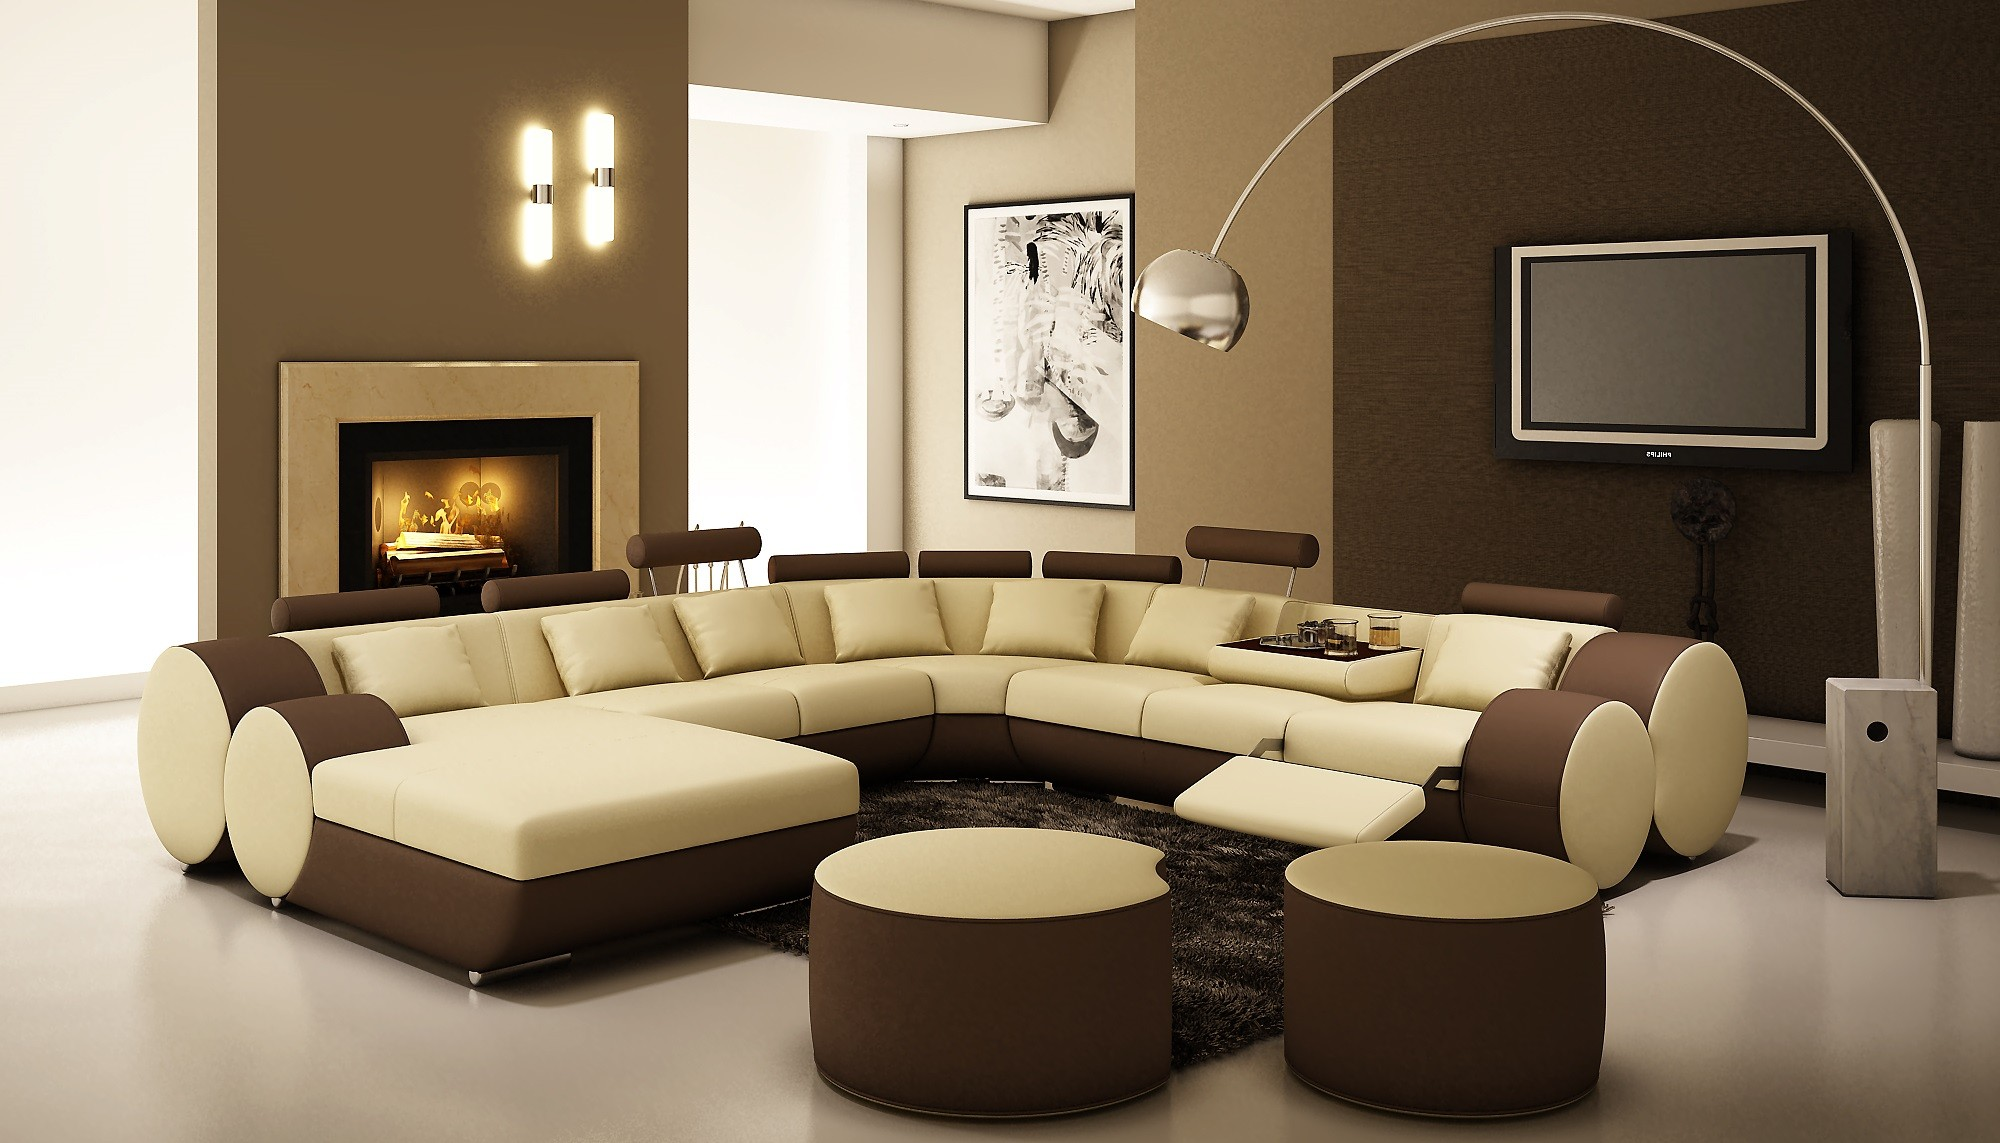 Unusual Couches Latest Charming Ideas Brown Couches Living Room Unusual Desi